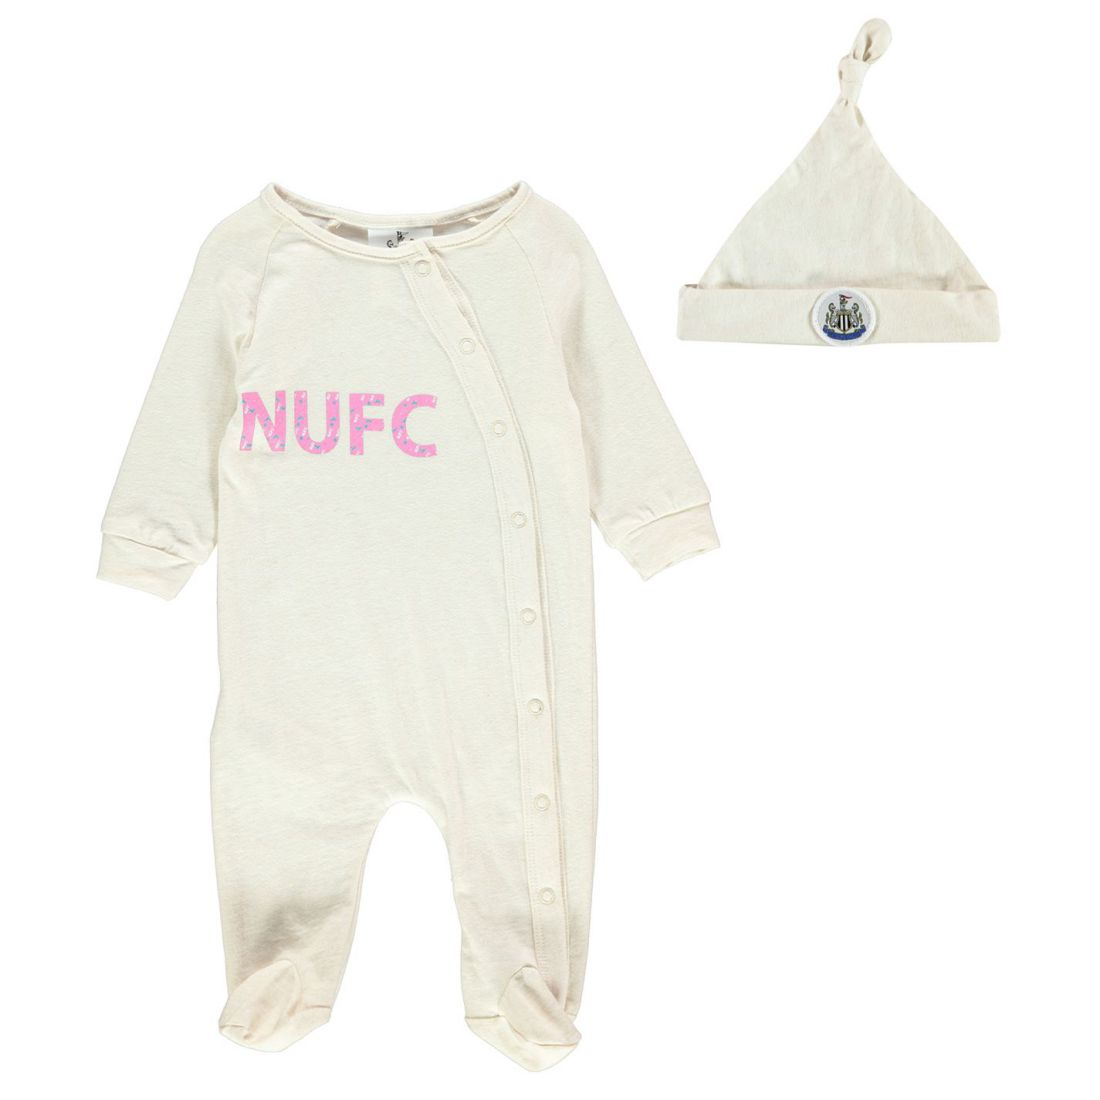 NUFC Sleepsuit Baby Girl Girls Rompers Sleep Suit Cotton Stamp